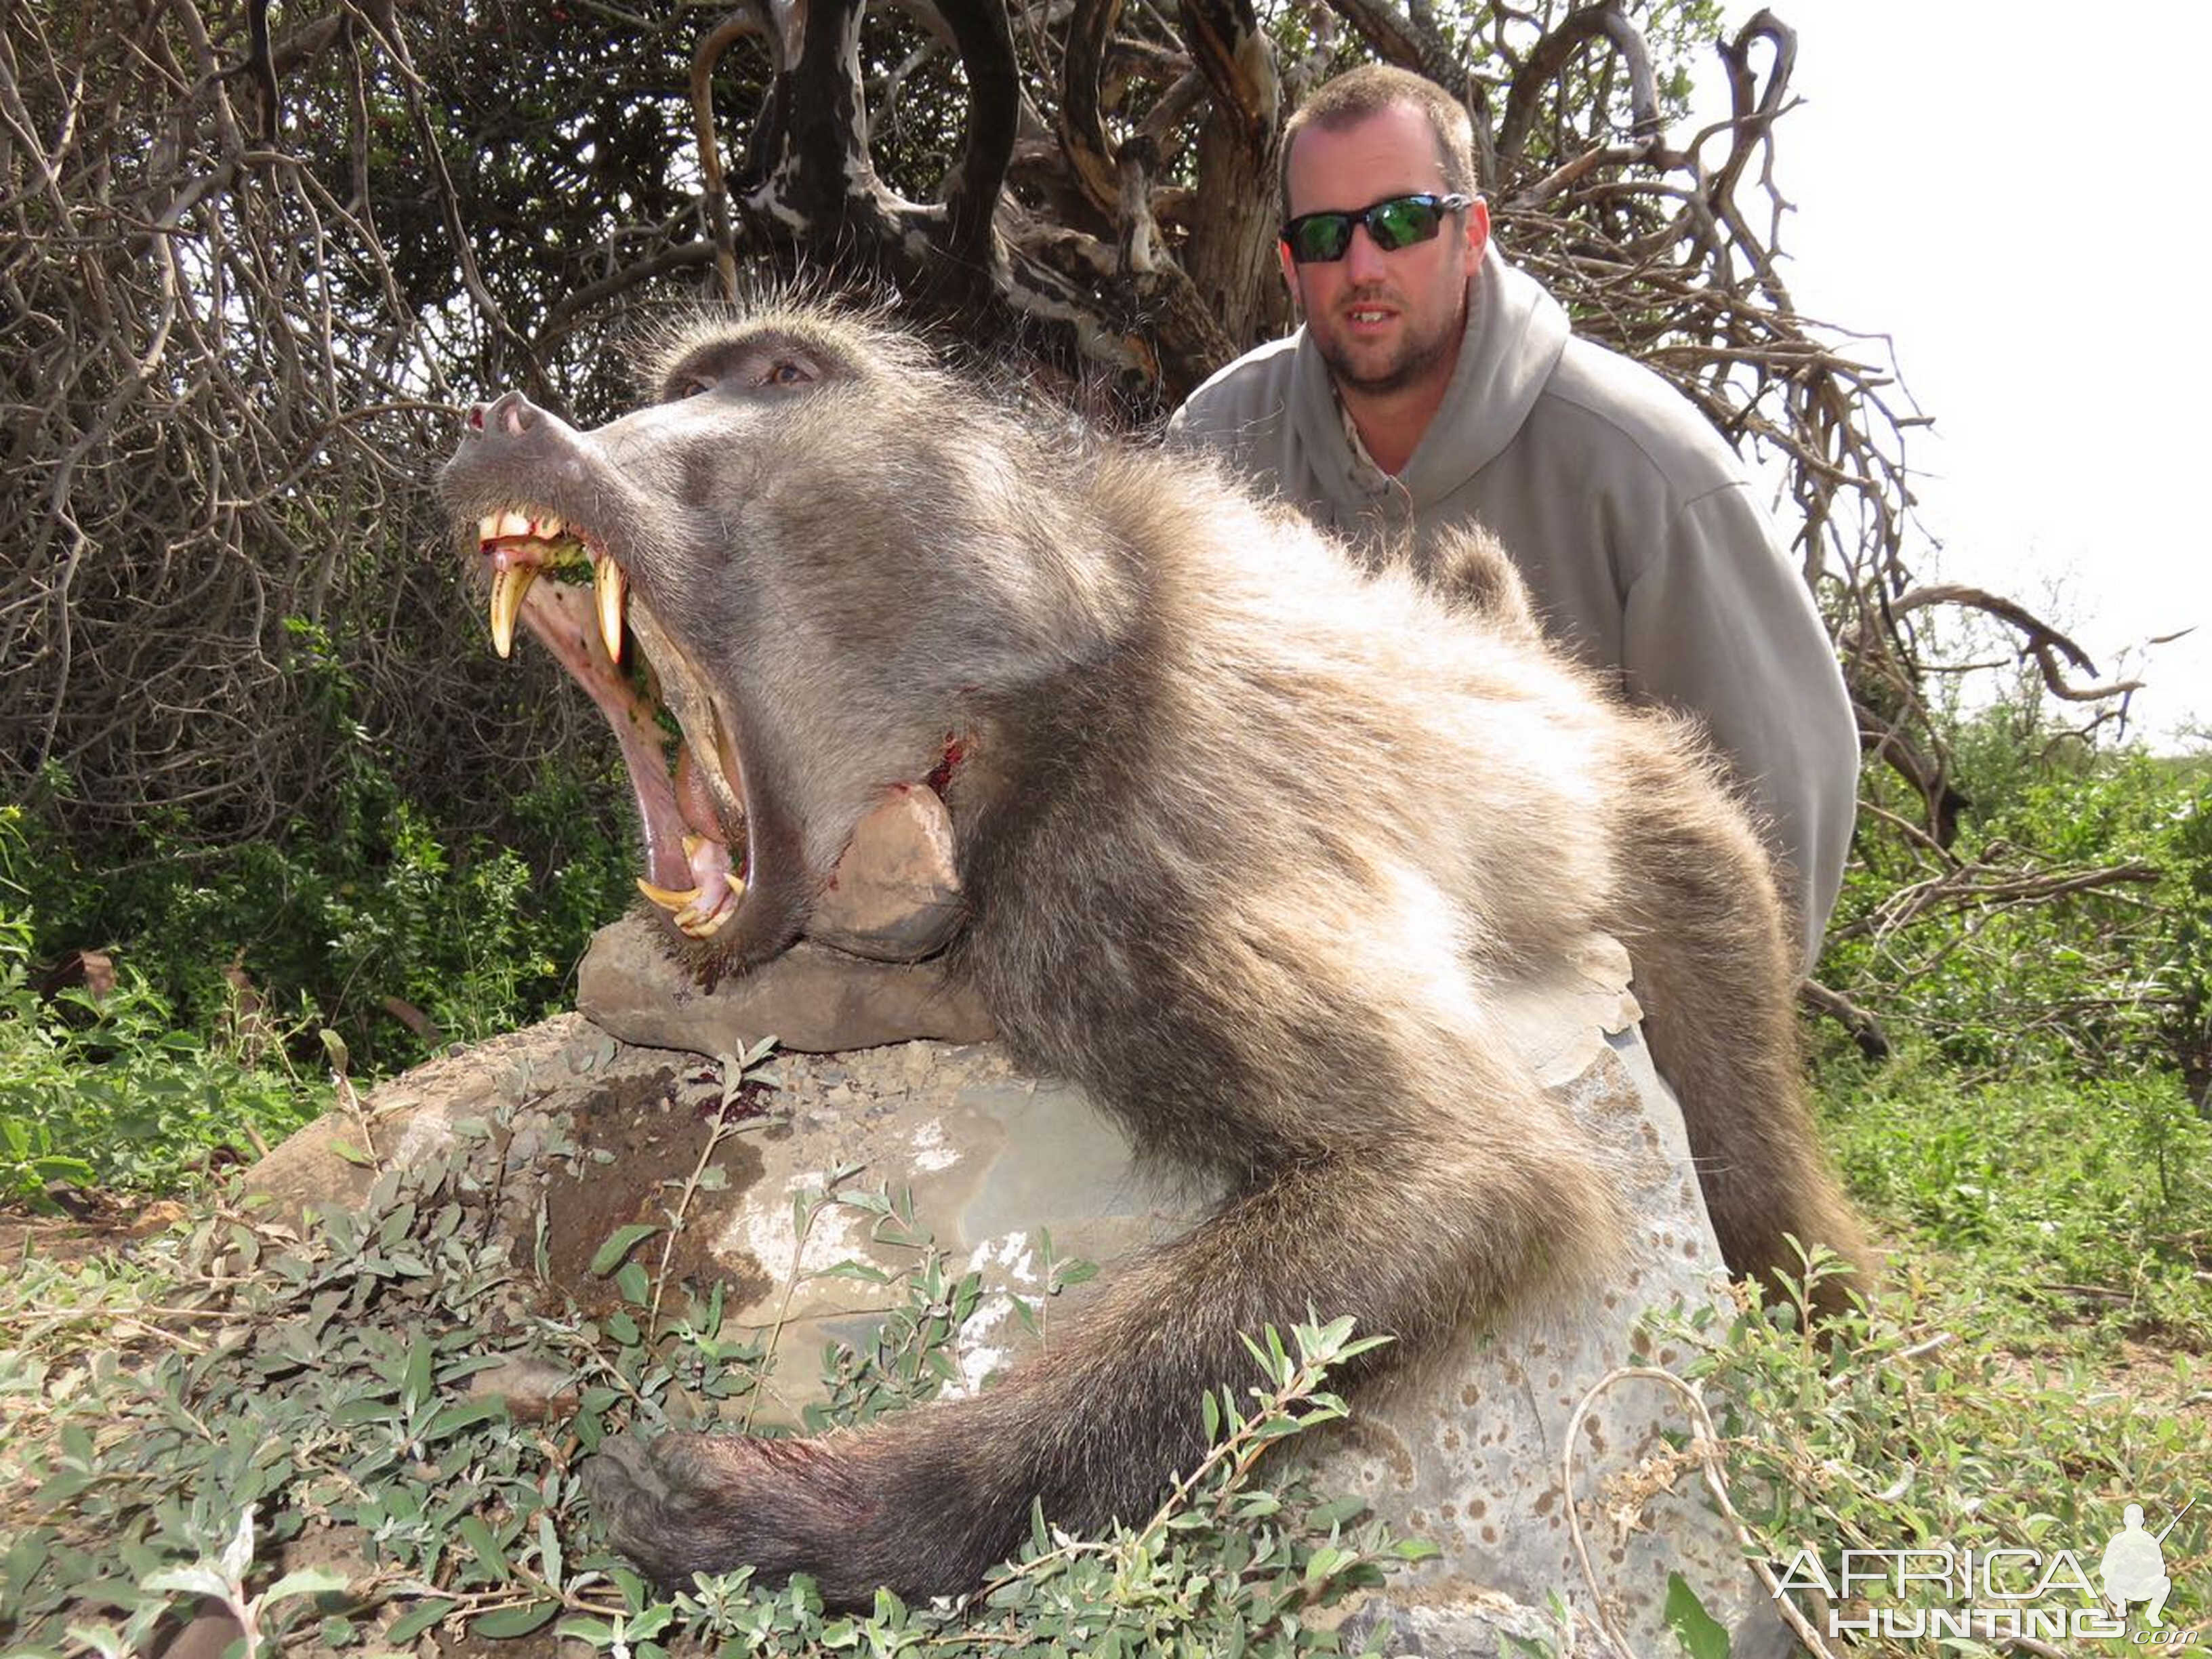 South Africa Hunting Baboon Africahunting Com